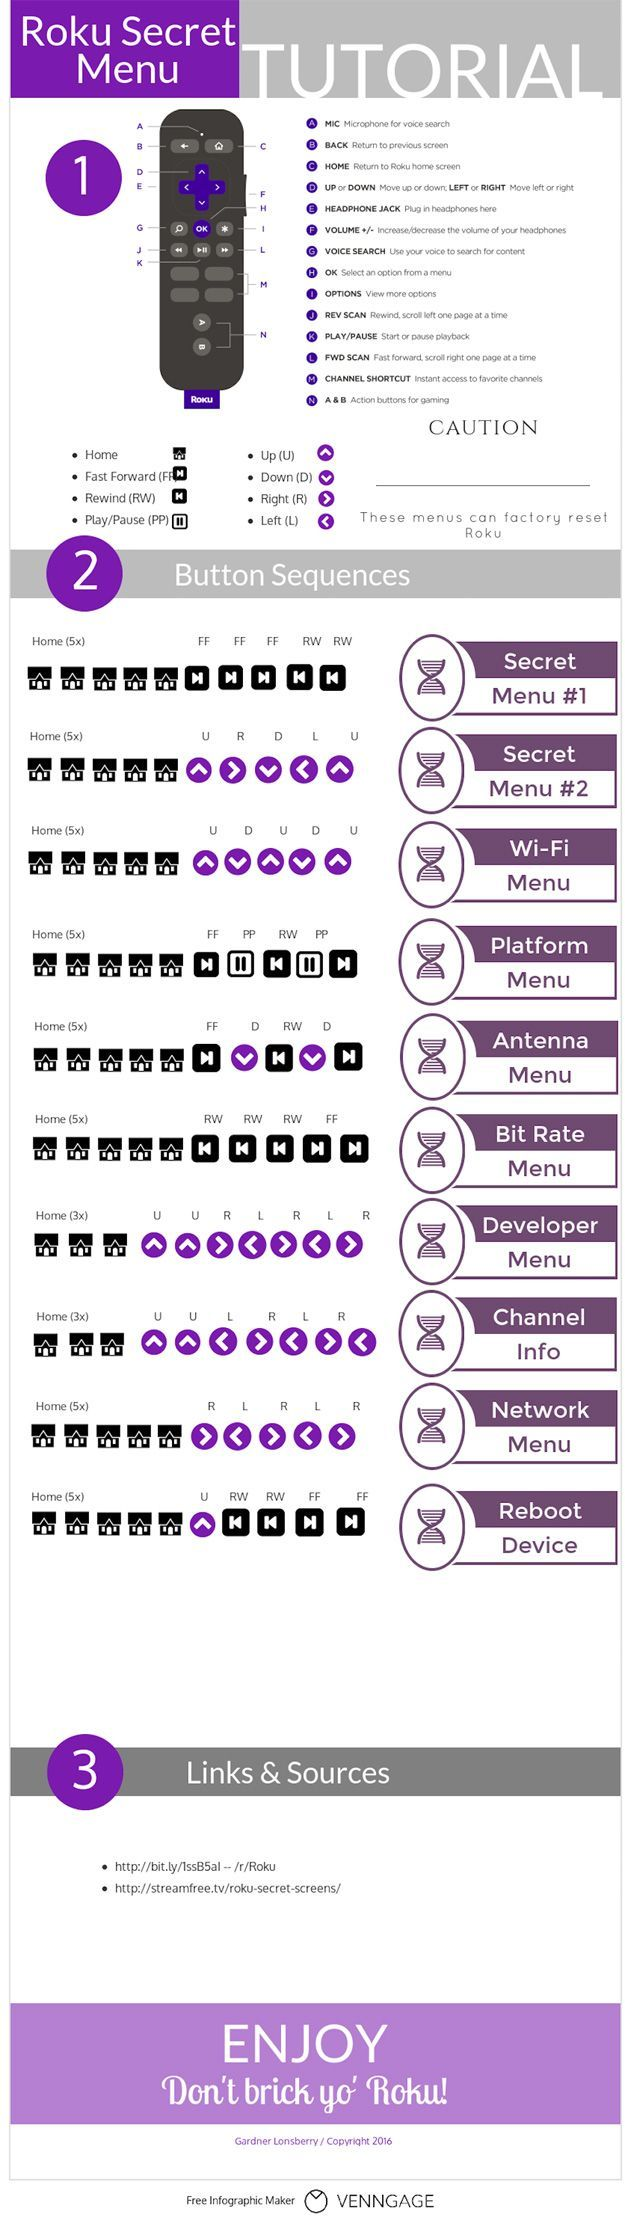 How to access all the hidden features on your Roku